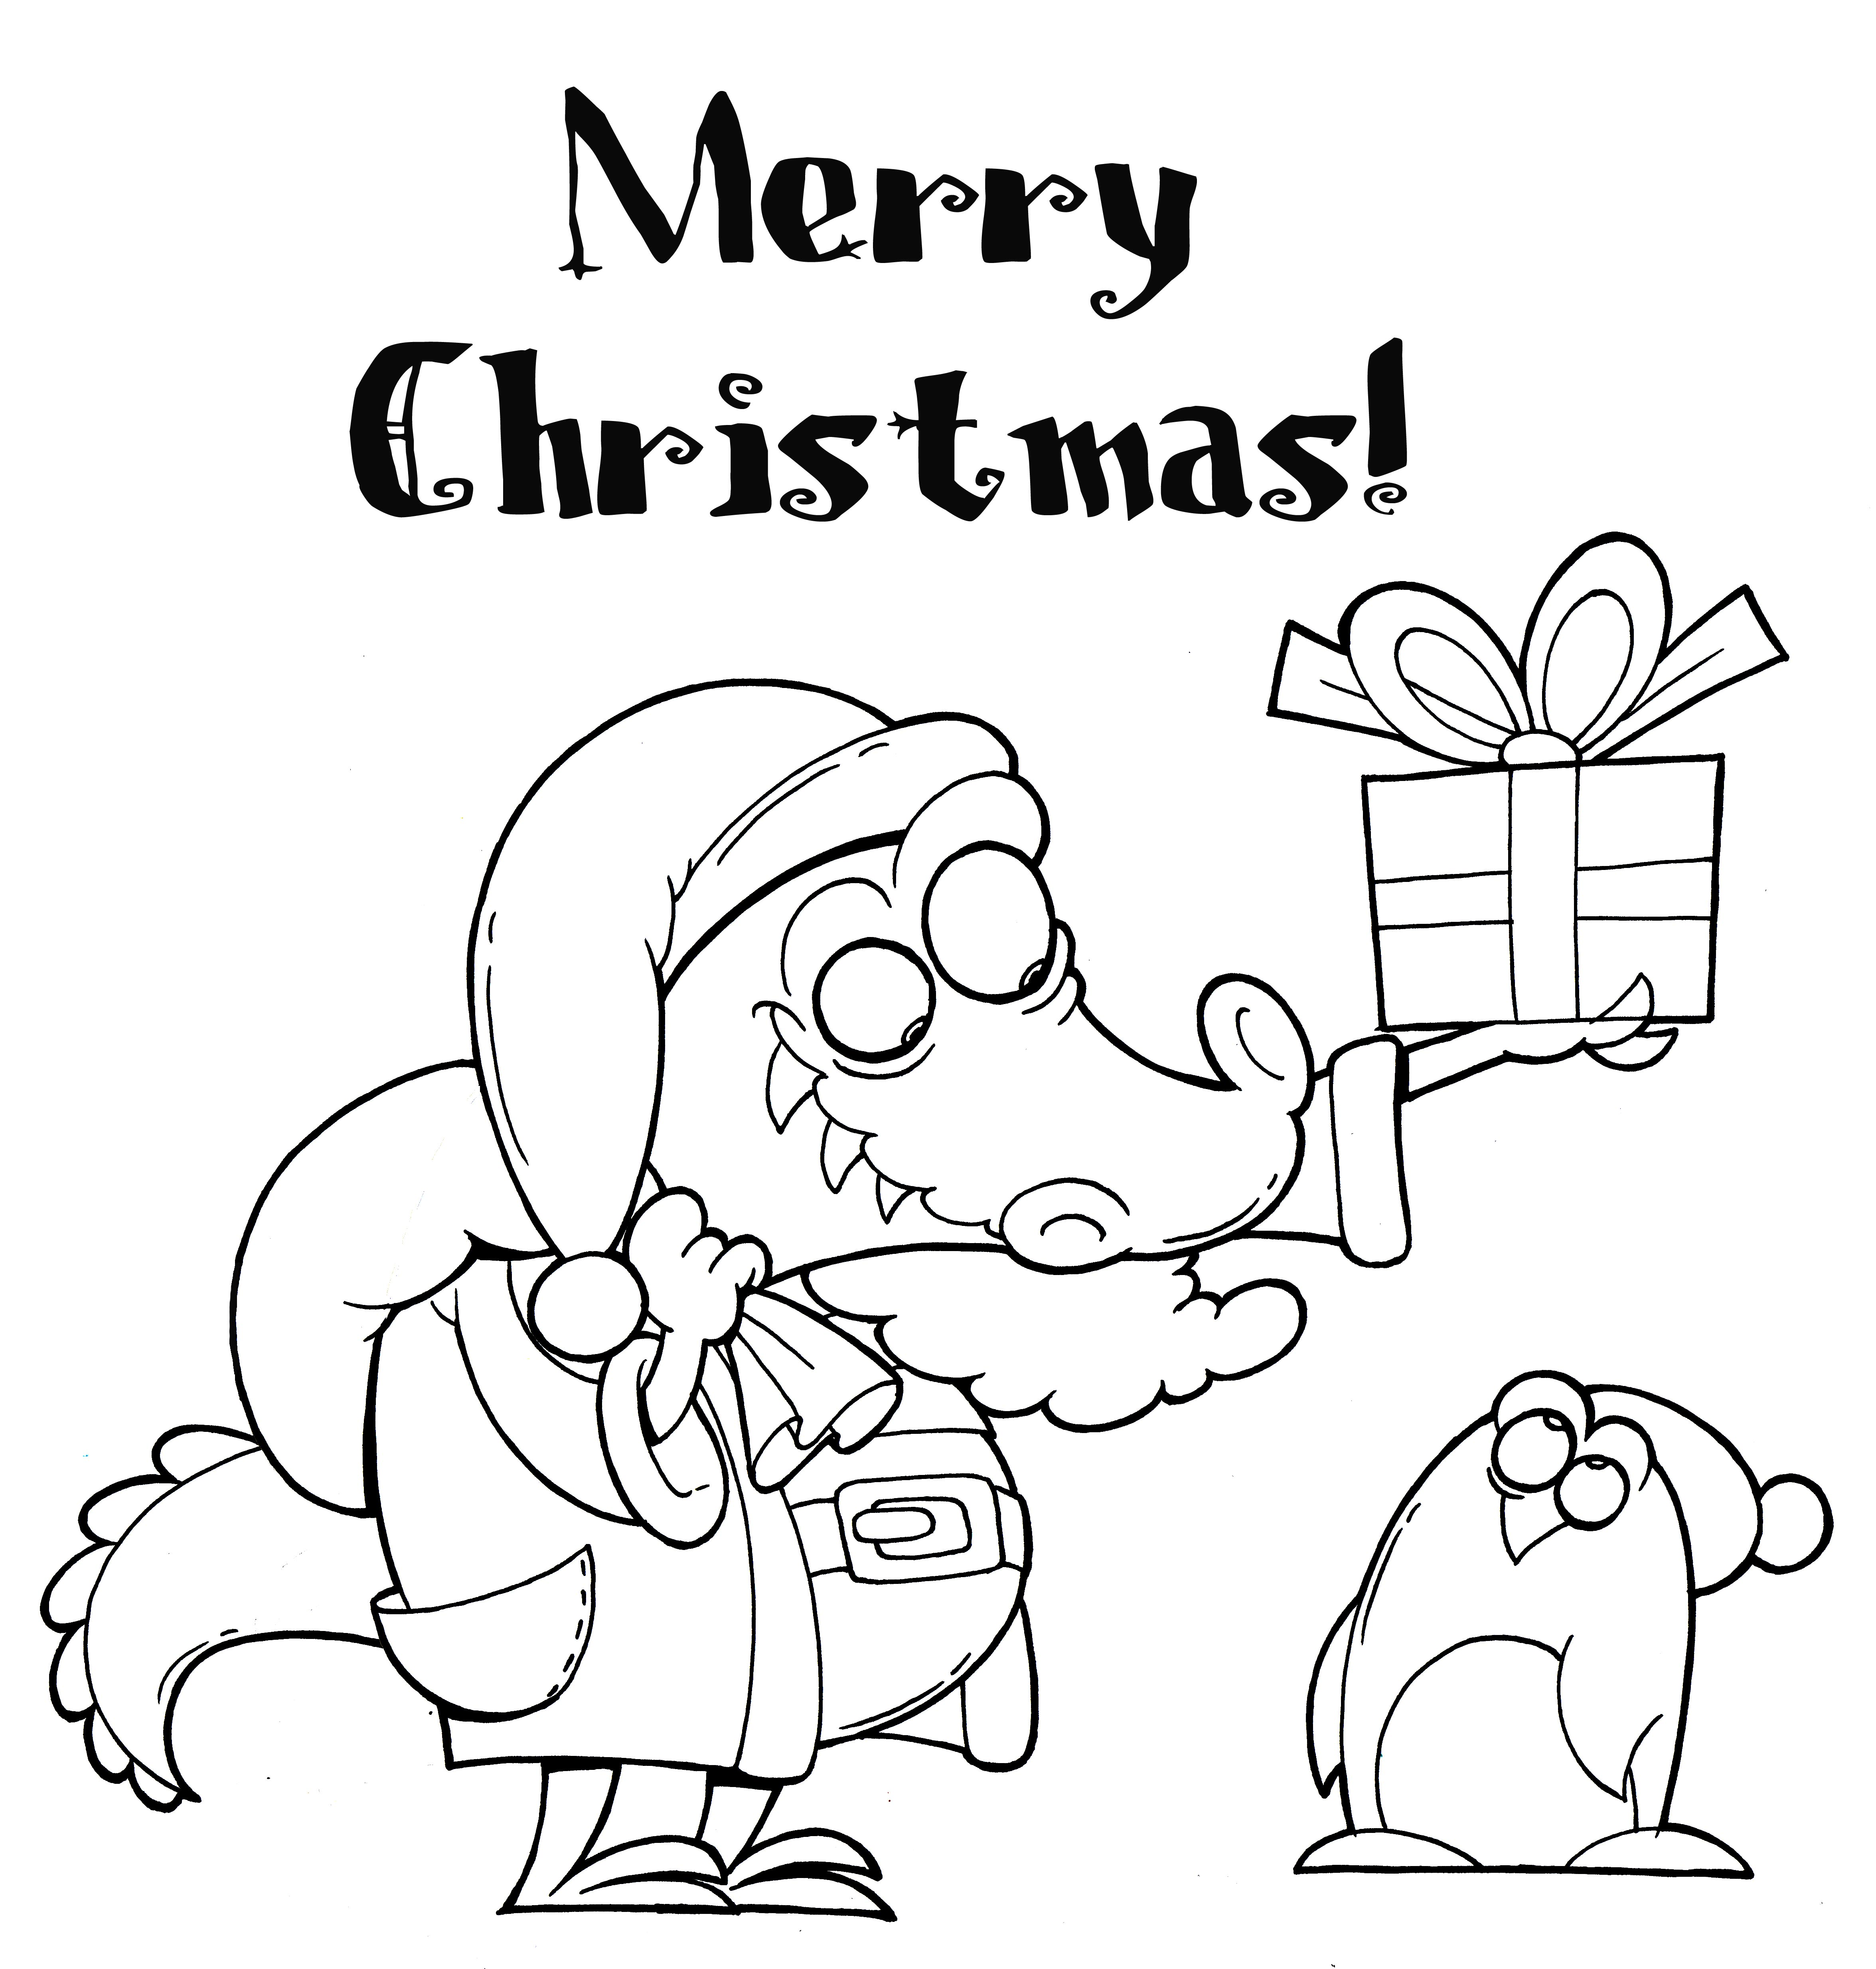 Russian Christmas Coloring Pages With